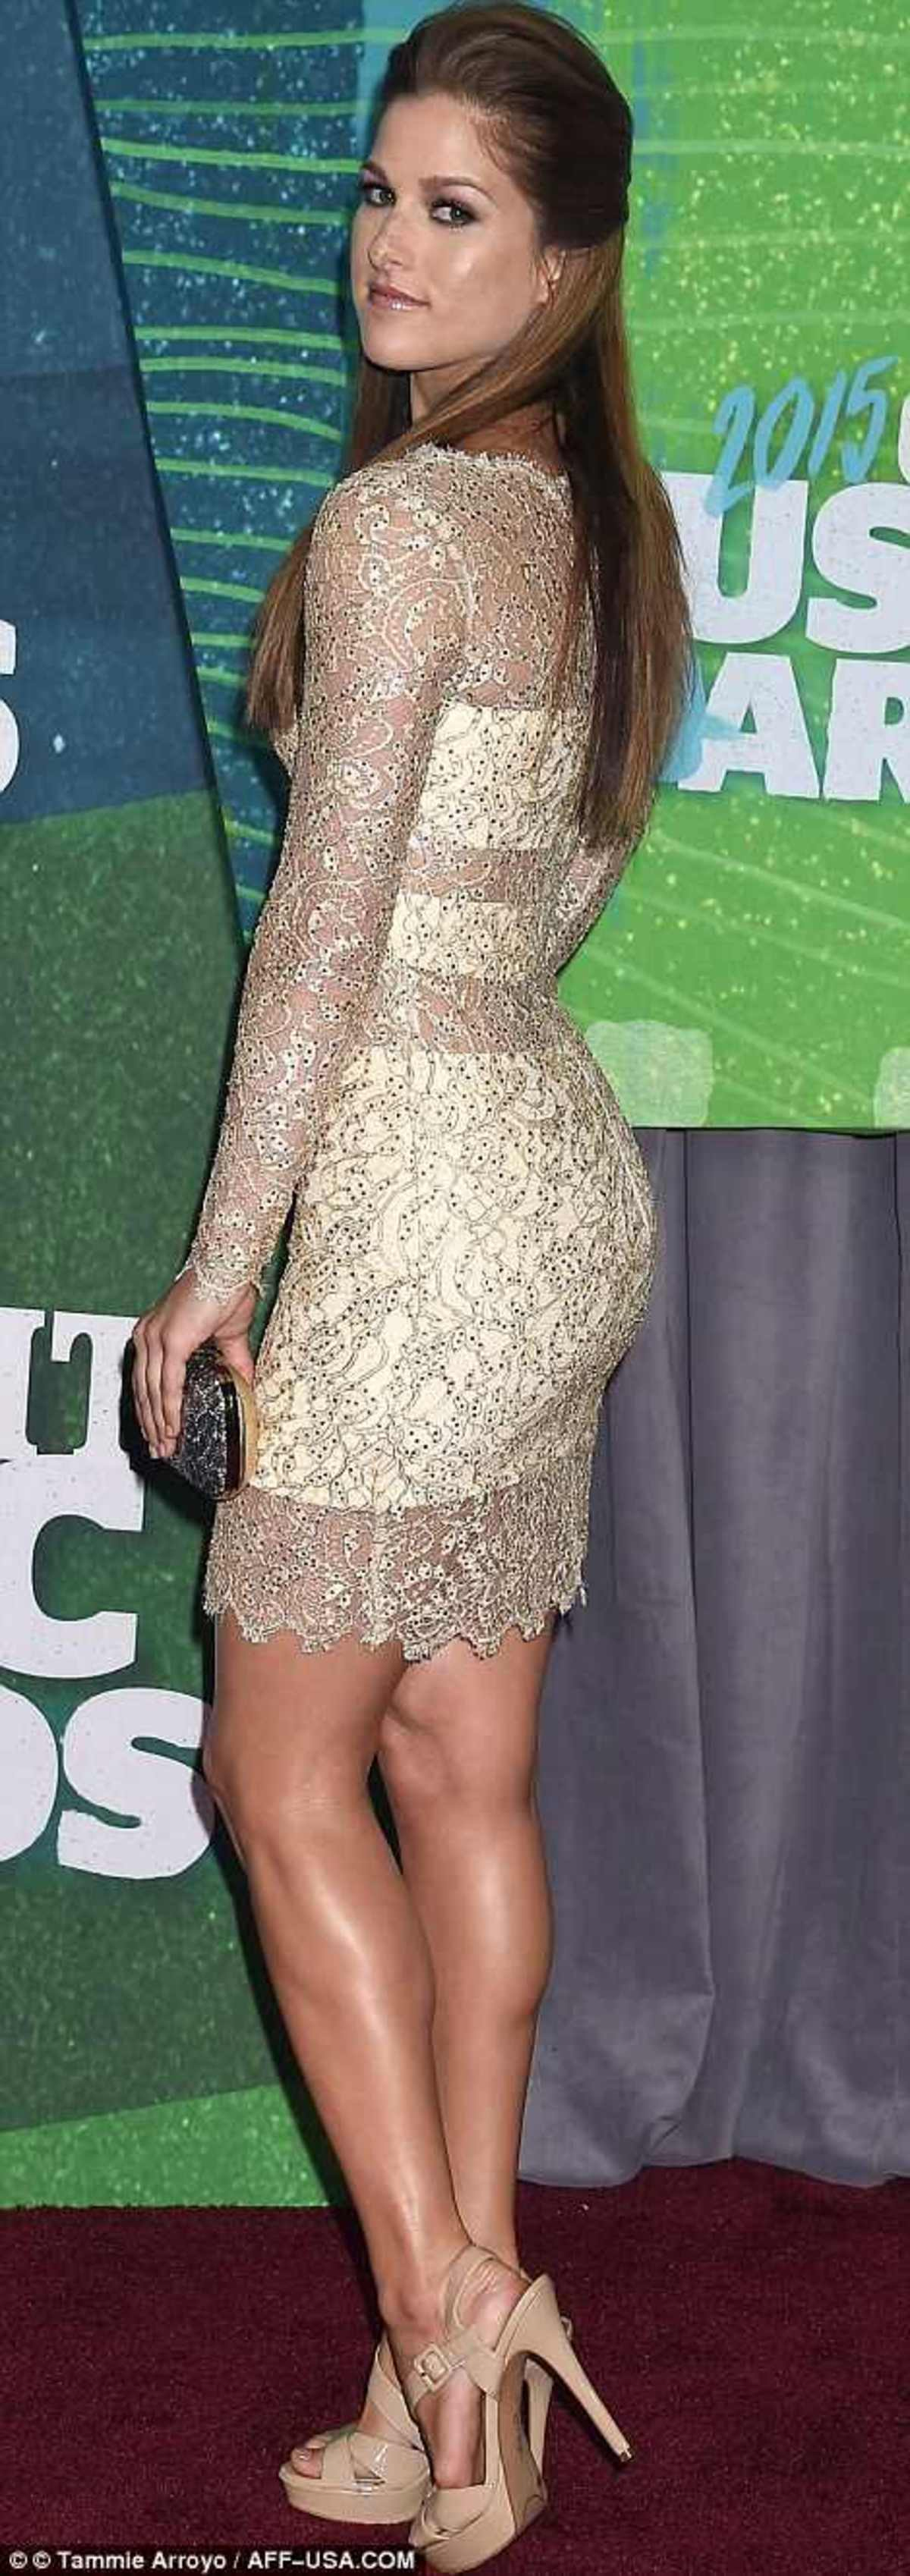 2984F7E000000578-0-Shimmering_Cassadee_Pope_showed_her_style_in_a_sheer_gold_number-a-85_1433984343909